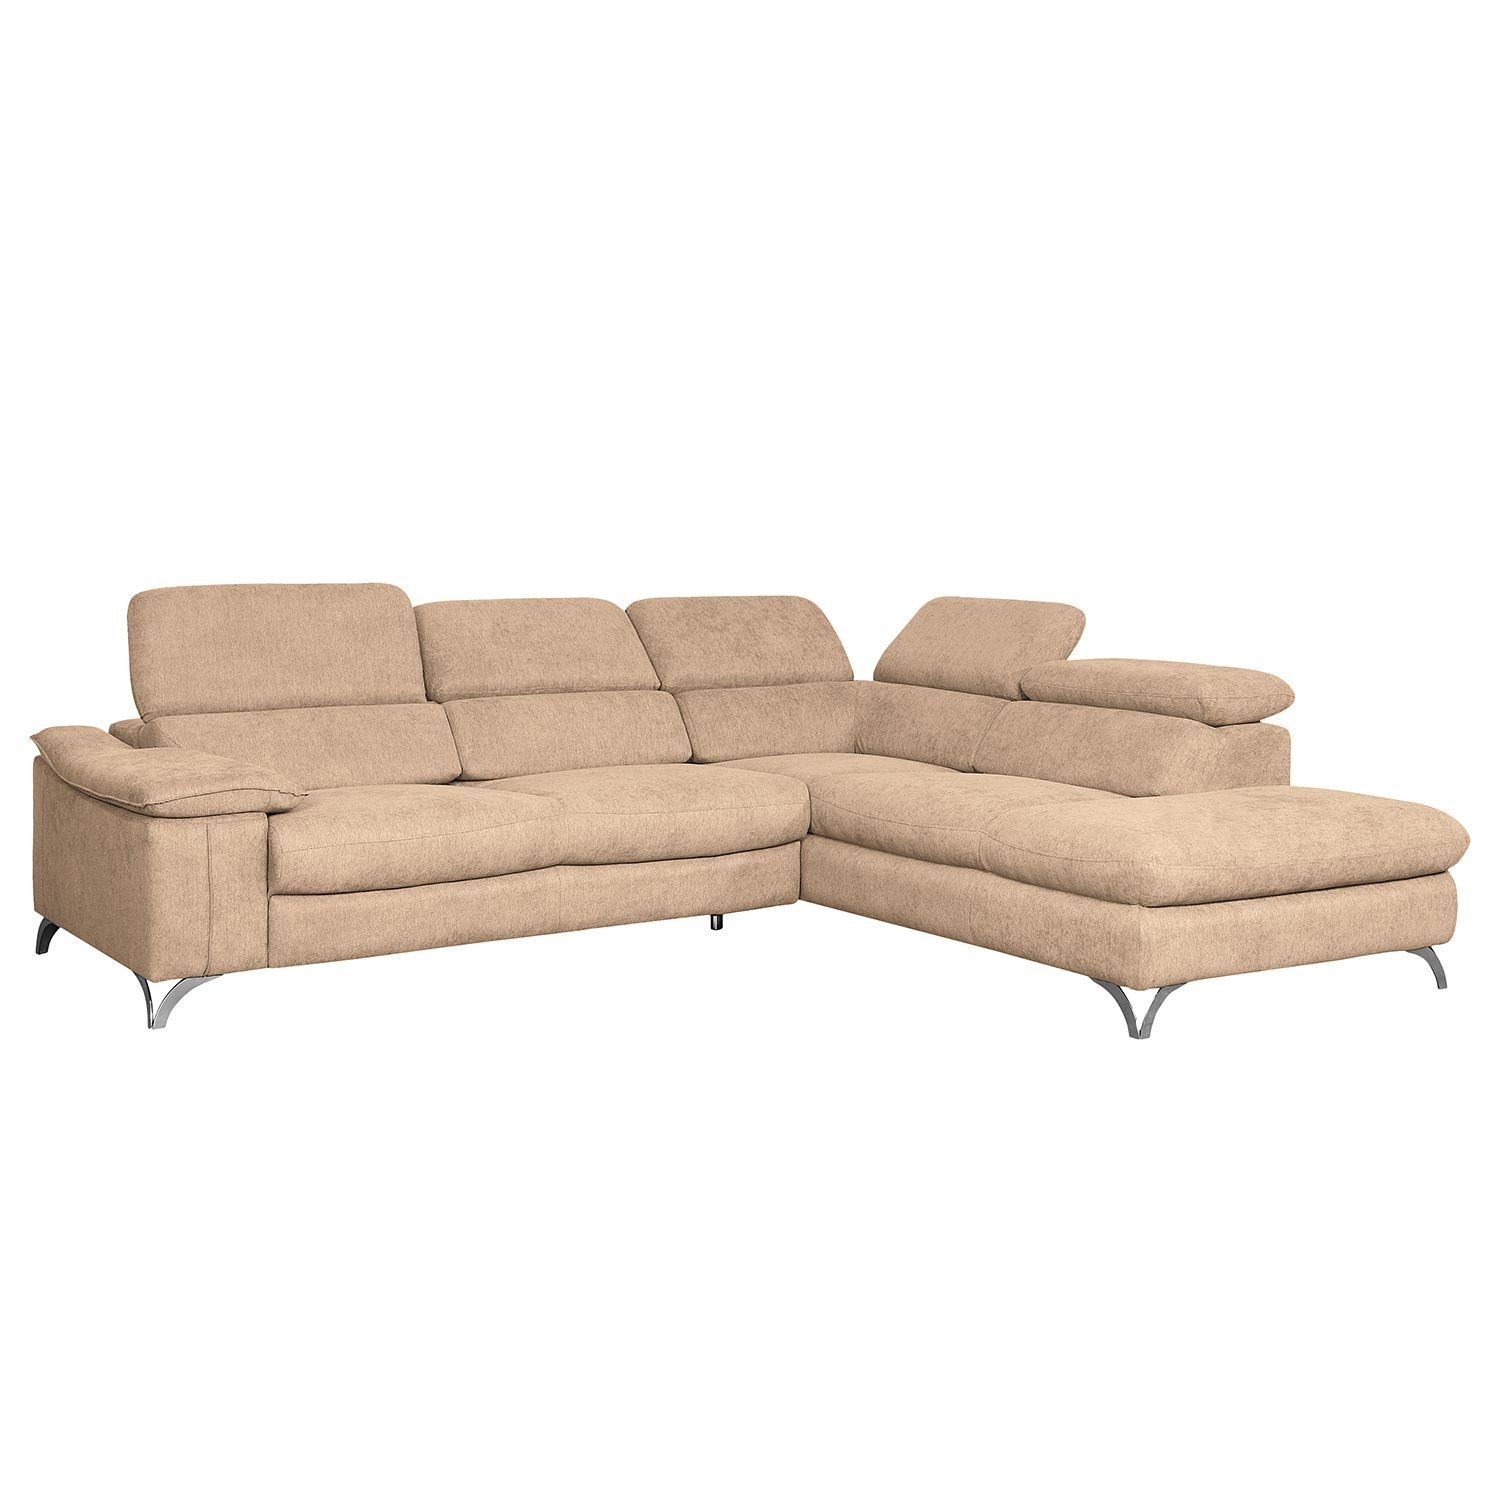 home24 Ecksofa Astoria